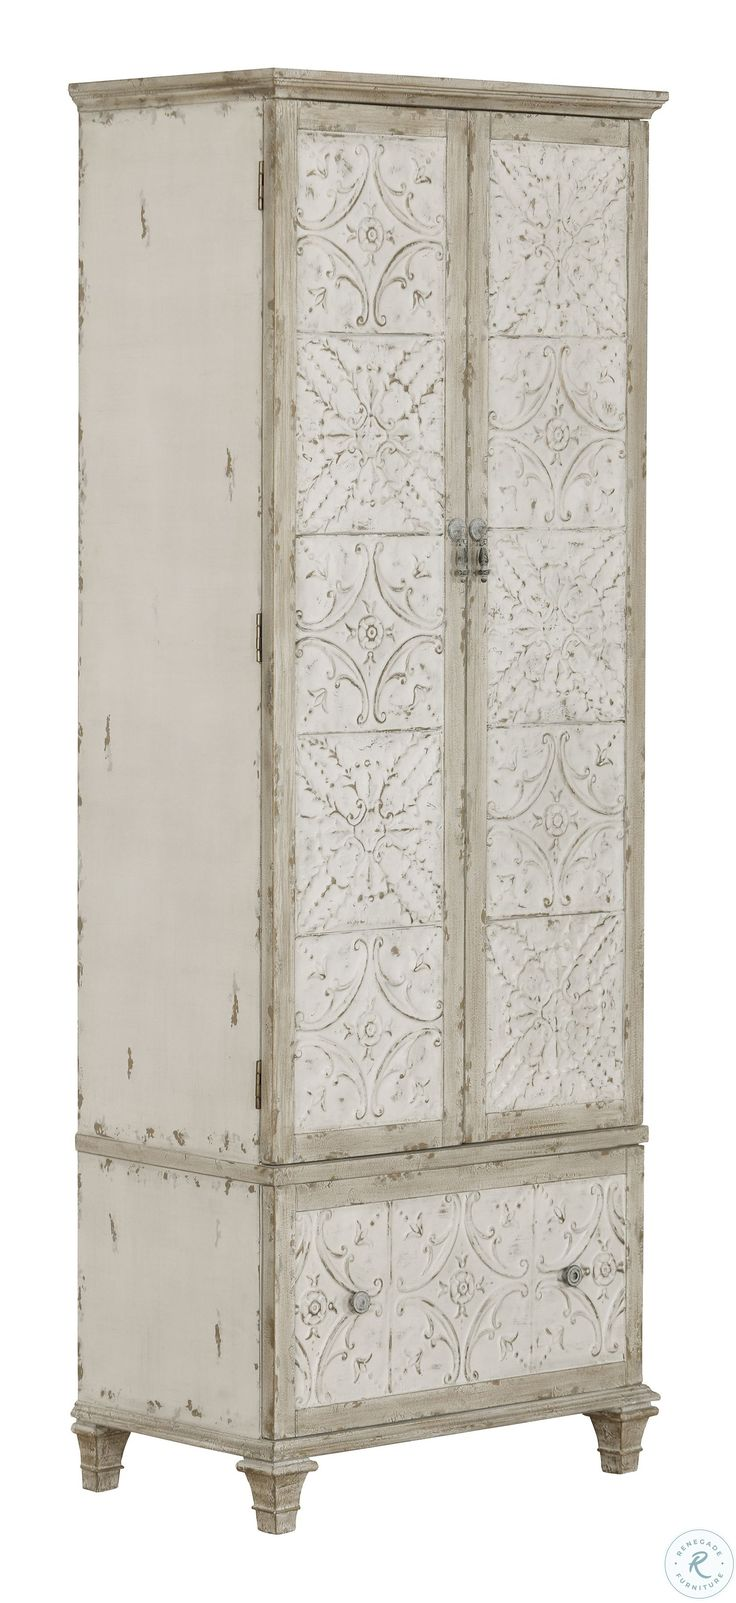 Distressed Cream Tall Pantry Cabinet in 2020 | Tall pantry ...